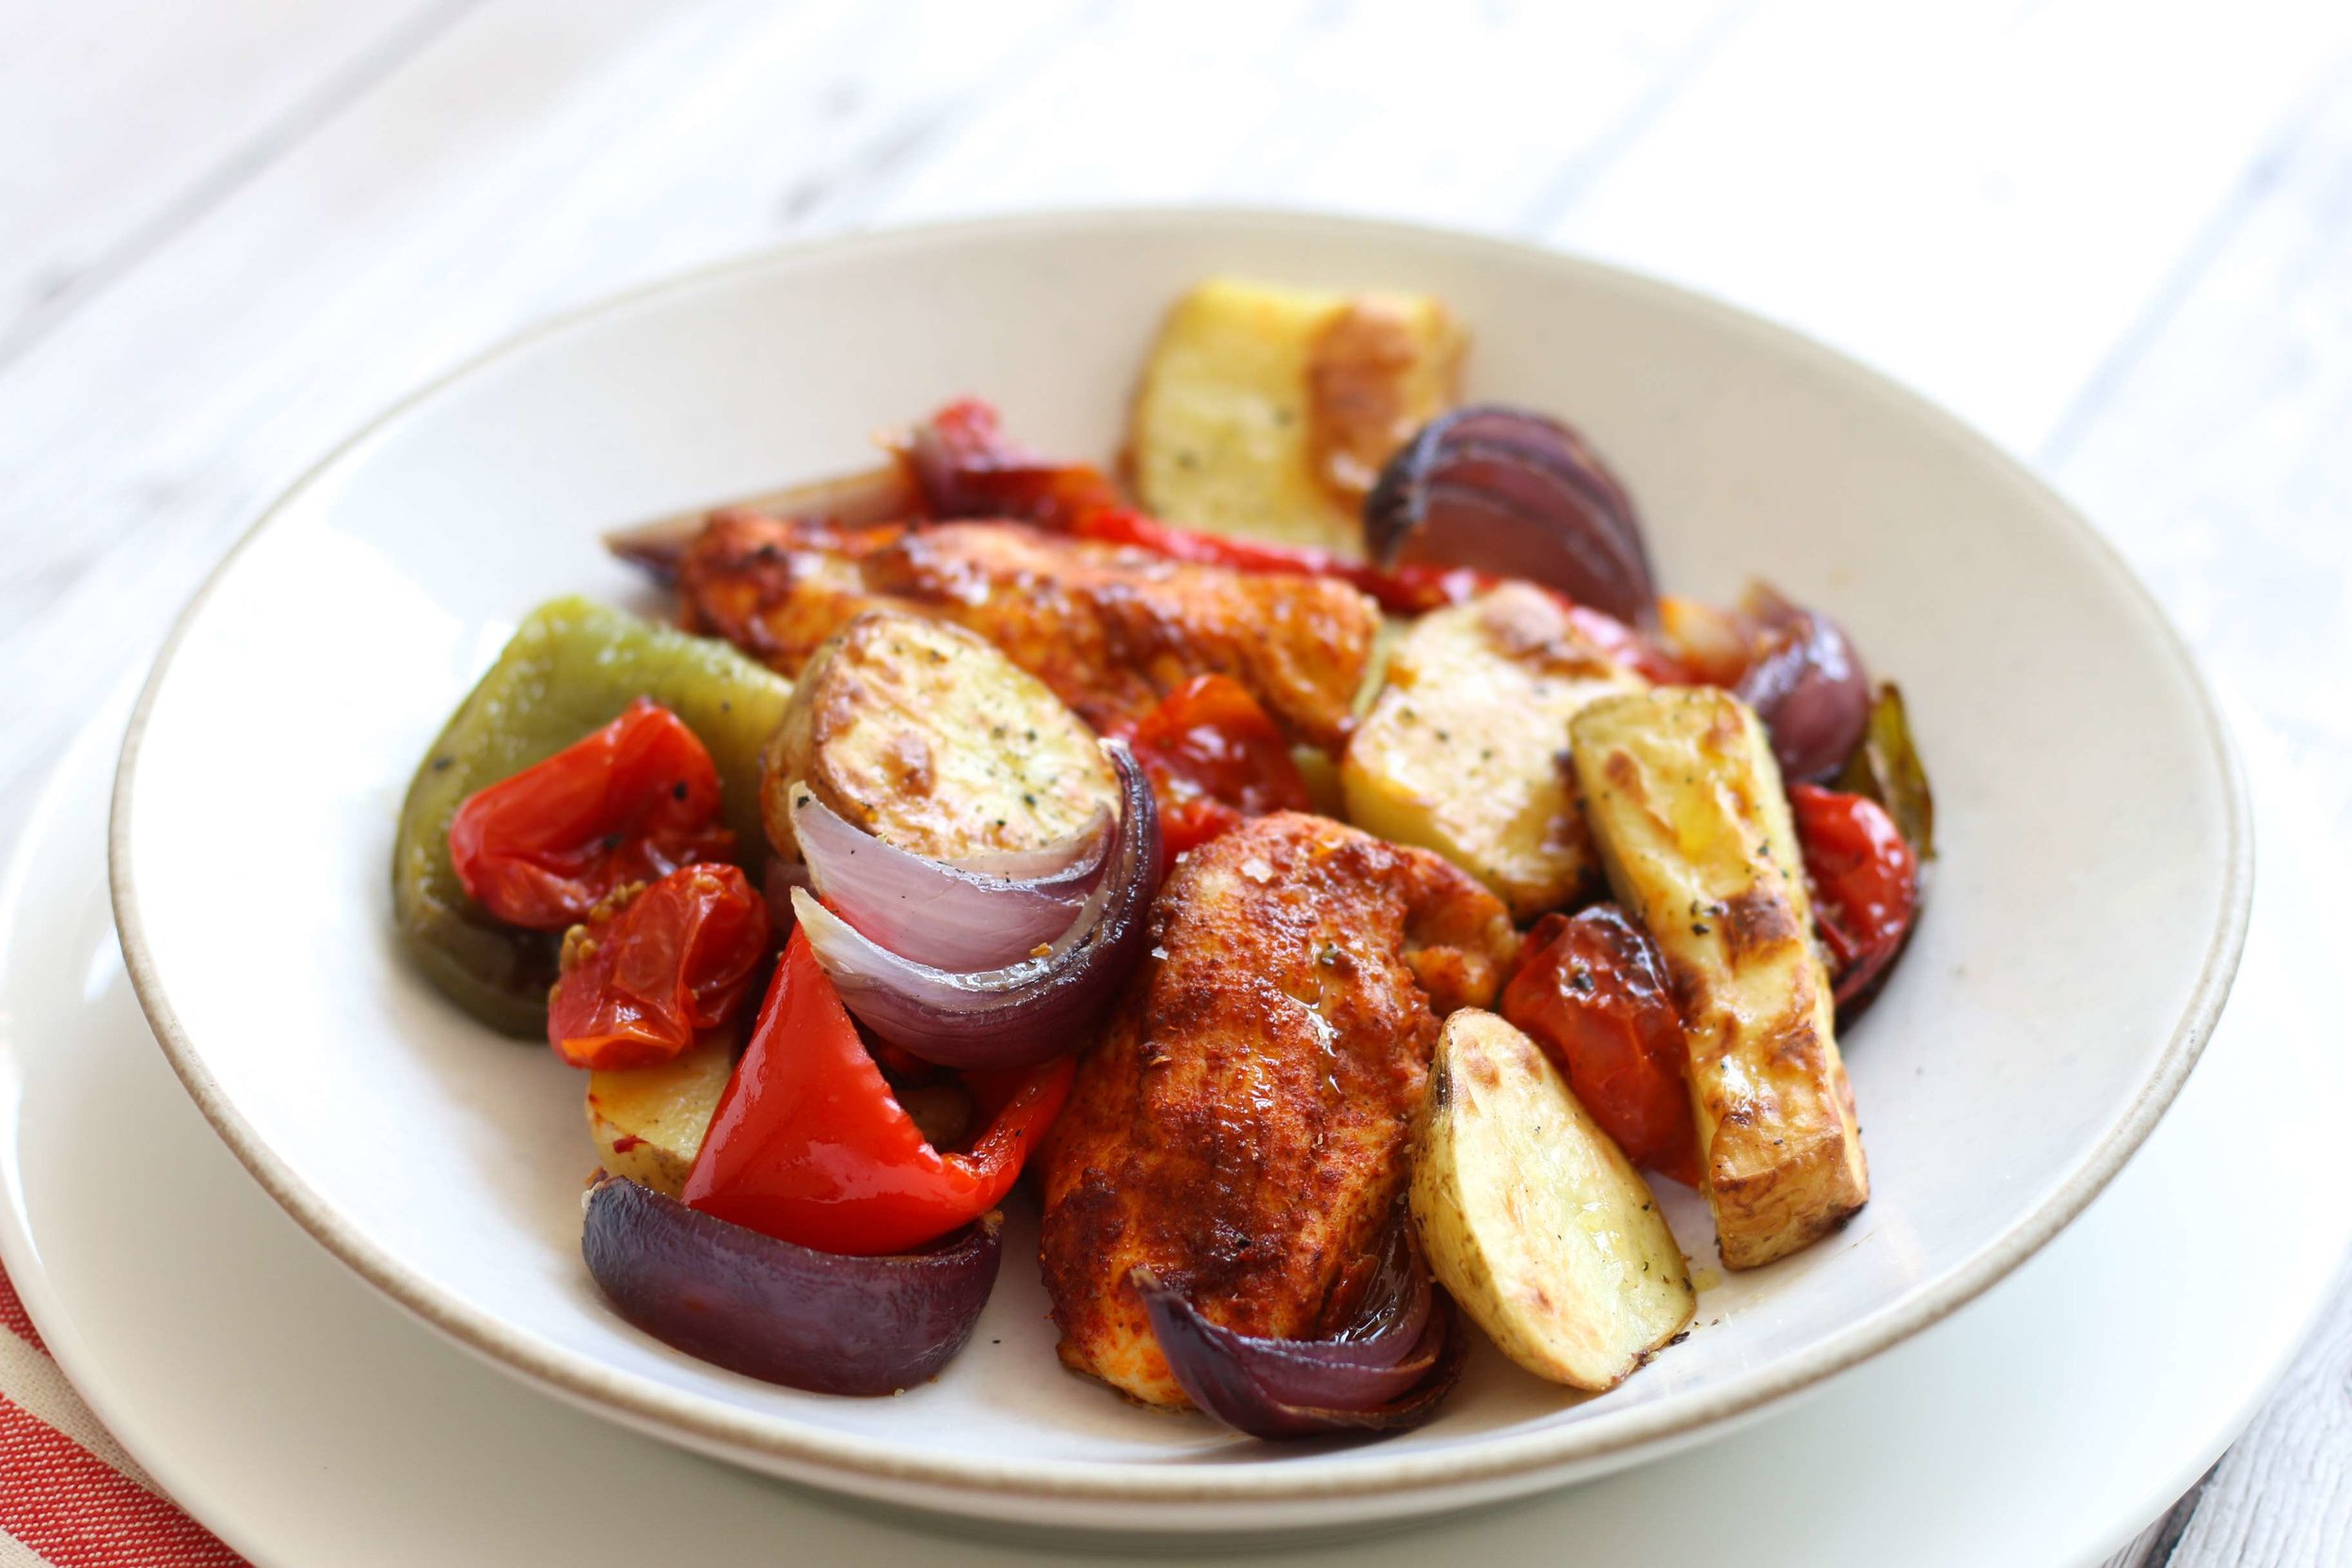 Tender chicken breast in tandoori spice with roasted vegetables